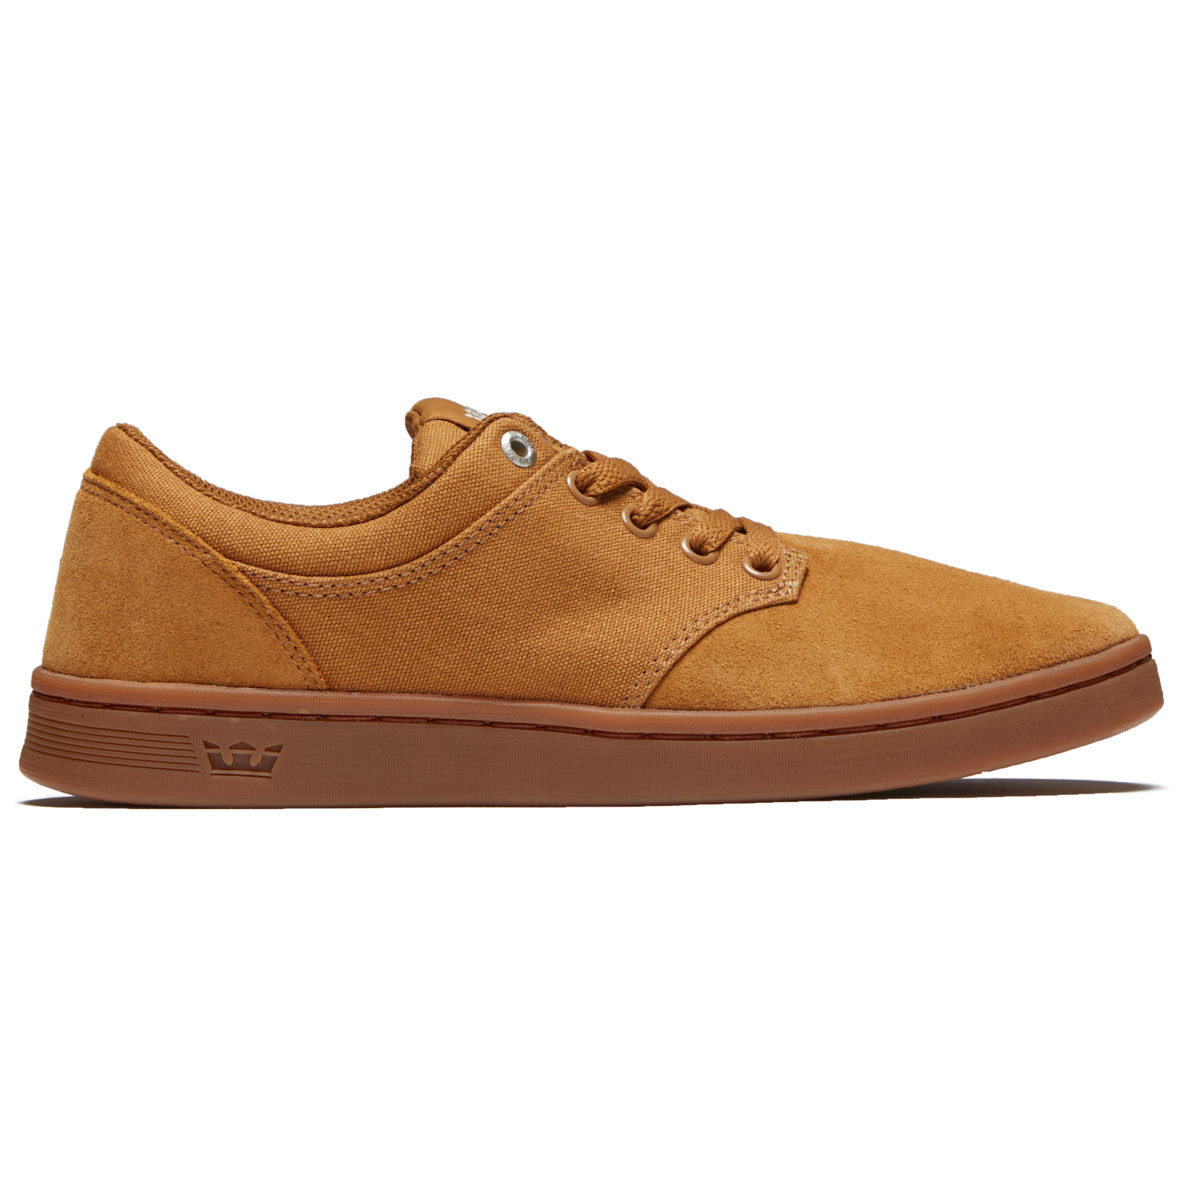 Supra Chino Shoes Chino Court Supra Supra Shoes Shoes Court Chino Shoes Chino Court Court Supra wHxFqt